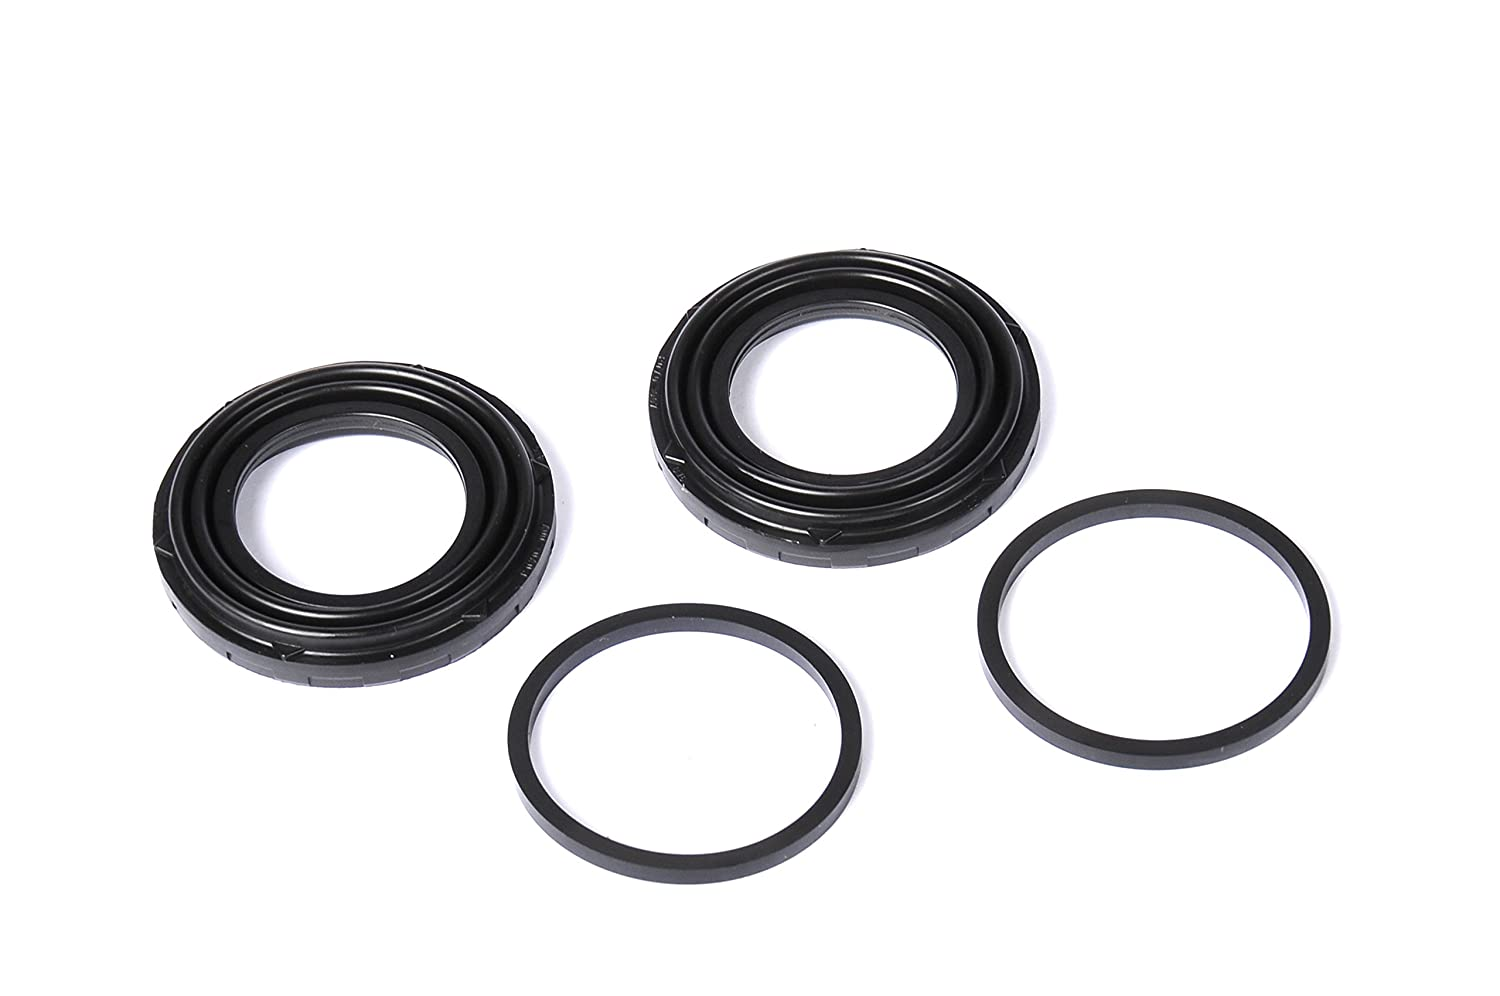 ACDelco 92193443 GM Original Equipment Front Disc Brake Caliper Piston Seal Kit with Boots and Seals